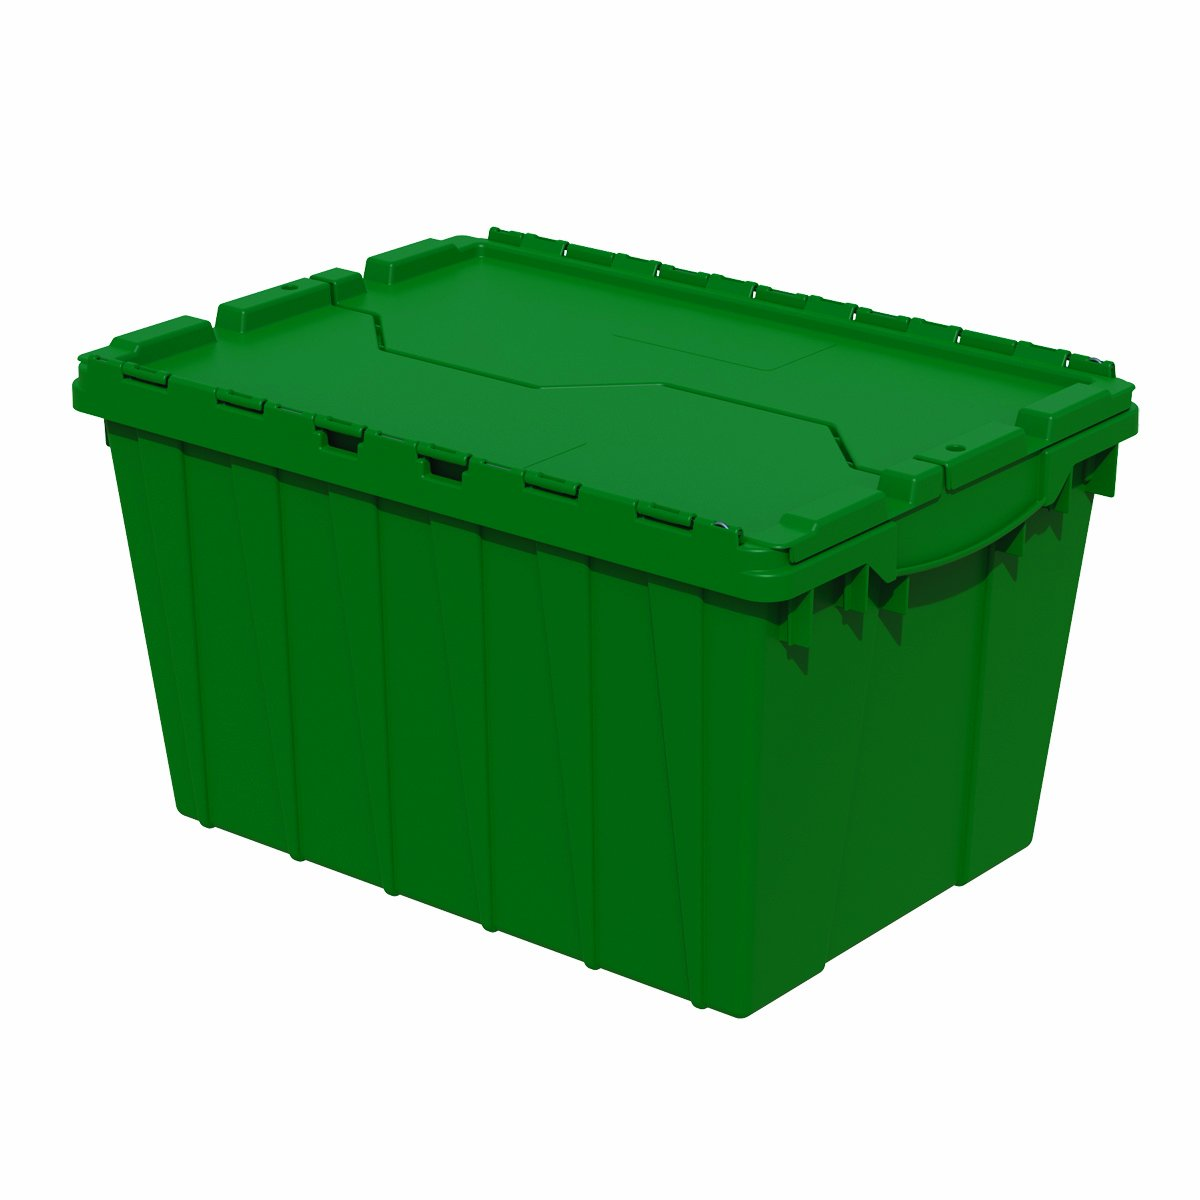 Akro-Mils 39120 21.5-Inch L by 15-Inch W by 12.5-Inch H 6-Pack Attached Lid Container Plastic Storage and Distribution Tote with Hinged Lid, Green by Akro-Mils